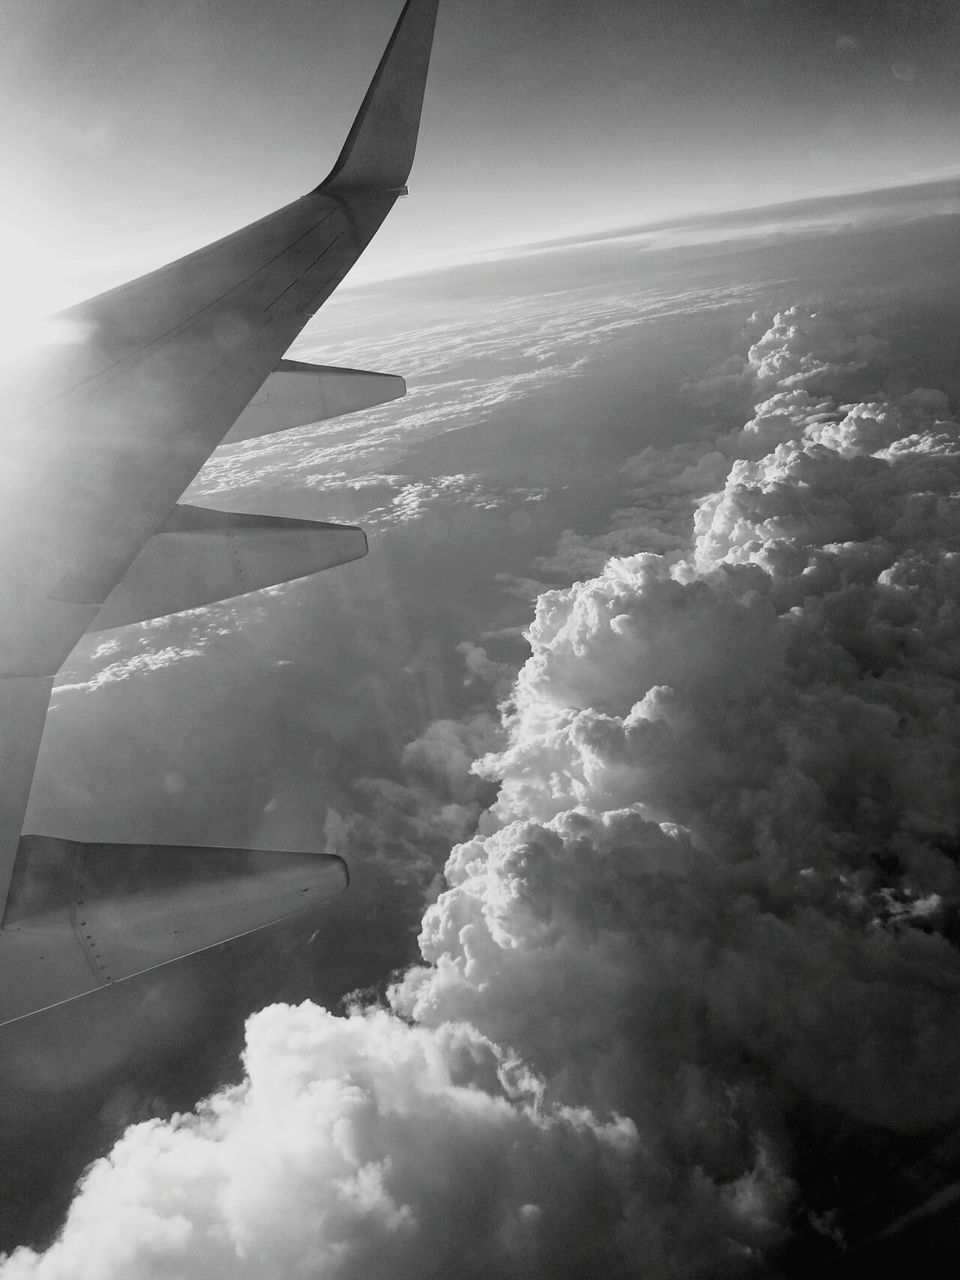 journey, transportation, airplane, airplane wing, aerial view, sky, nature, travel, cloud - sky, no people, aircraft wing, beauty in nature, outdoors, day, scenics, air vehicle, landscape, adventure, vehicle part, flying, the natural world